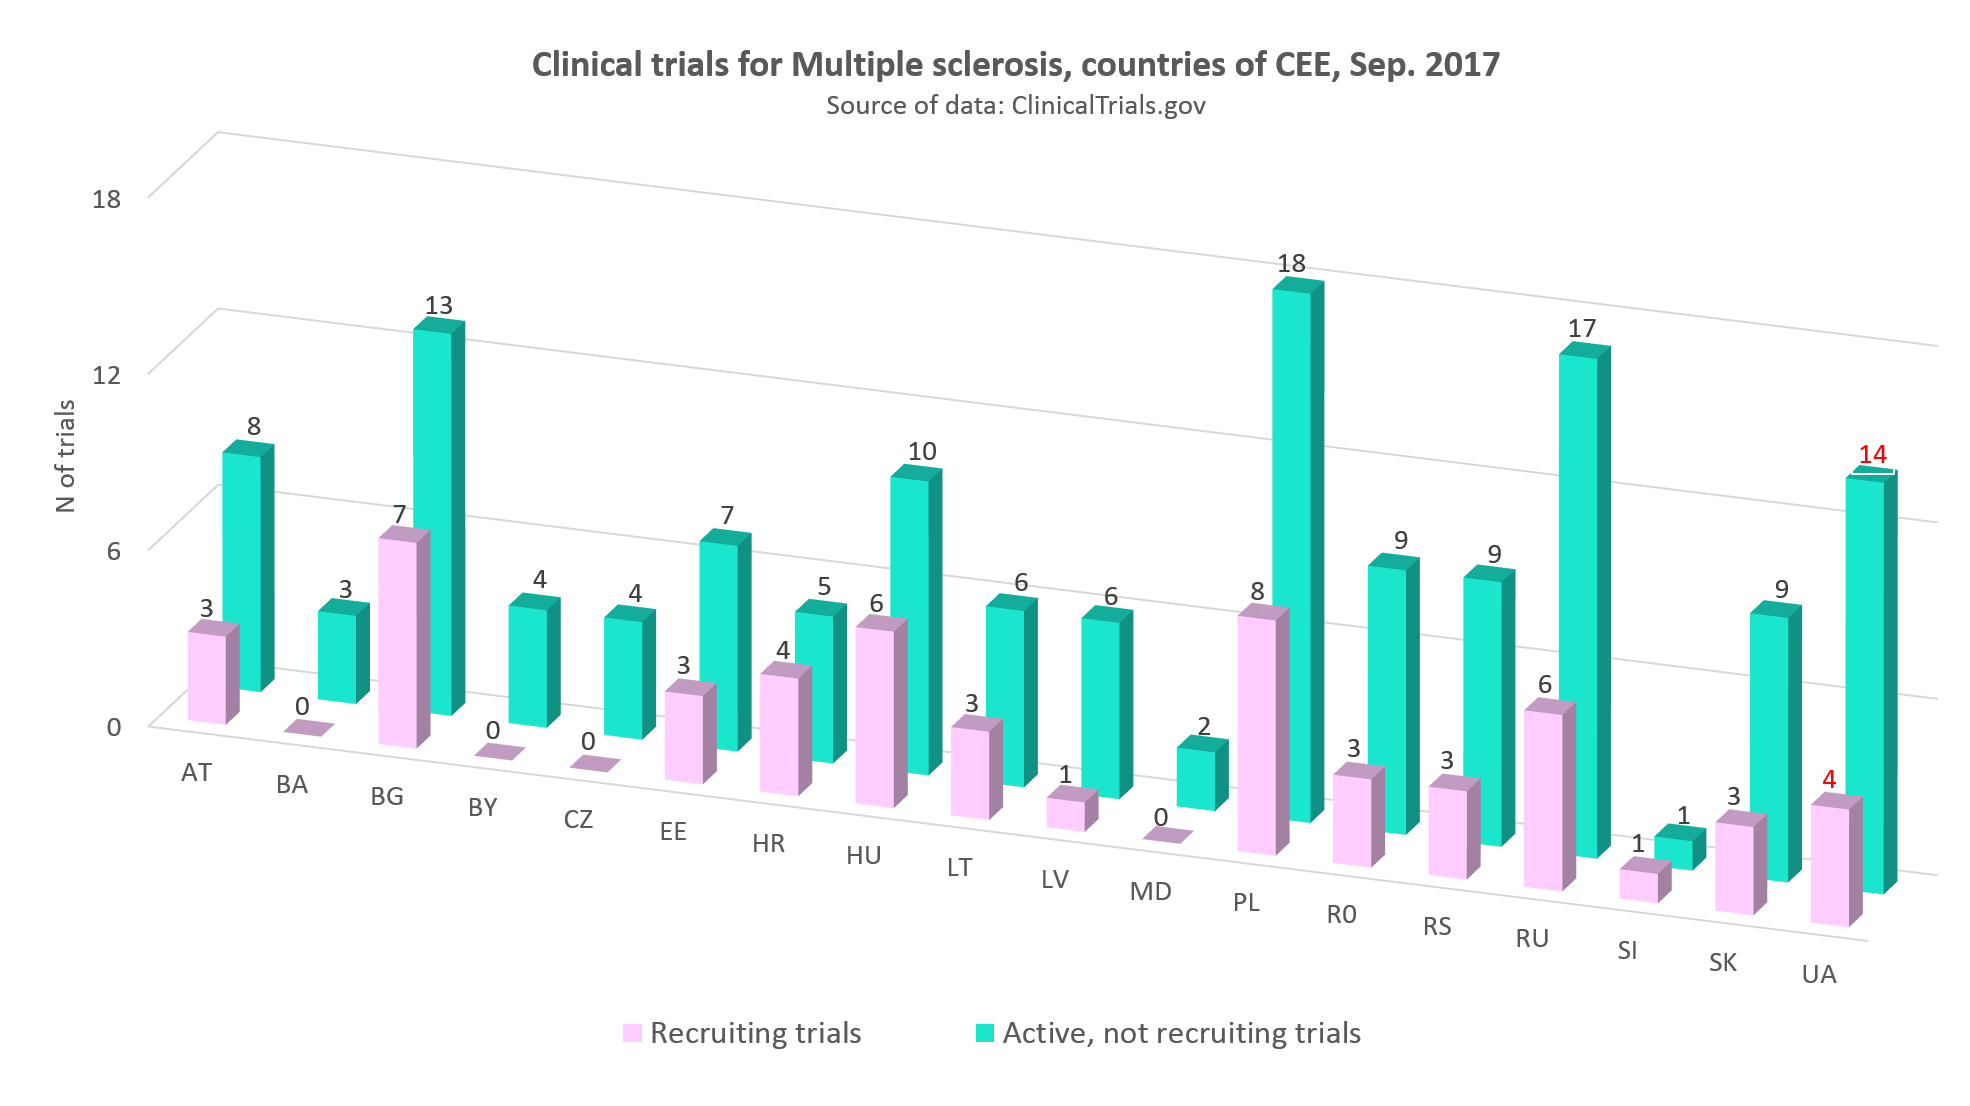 Clinical trials for multiple sclerosis in the countries of CEE, September 2017